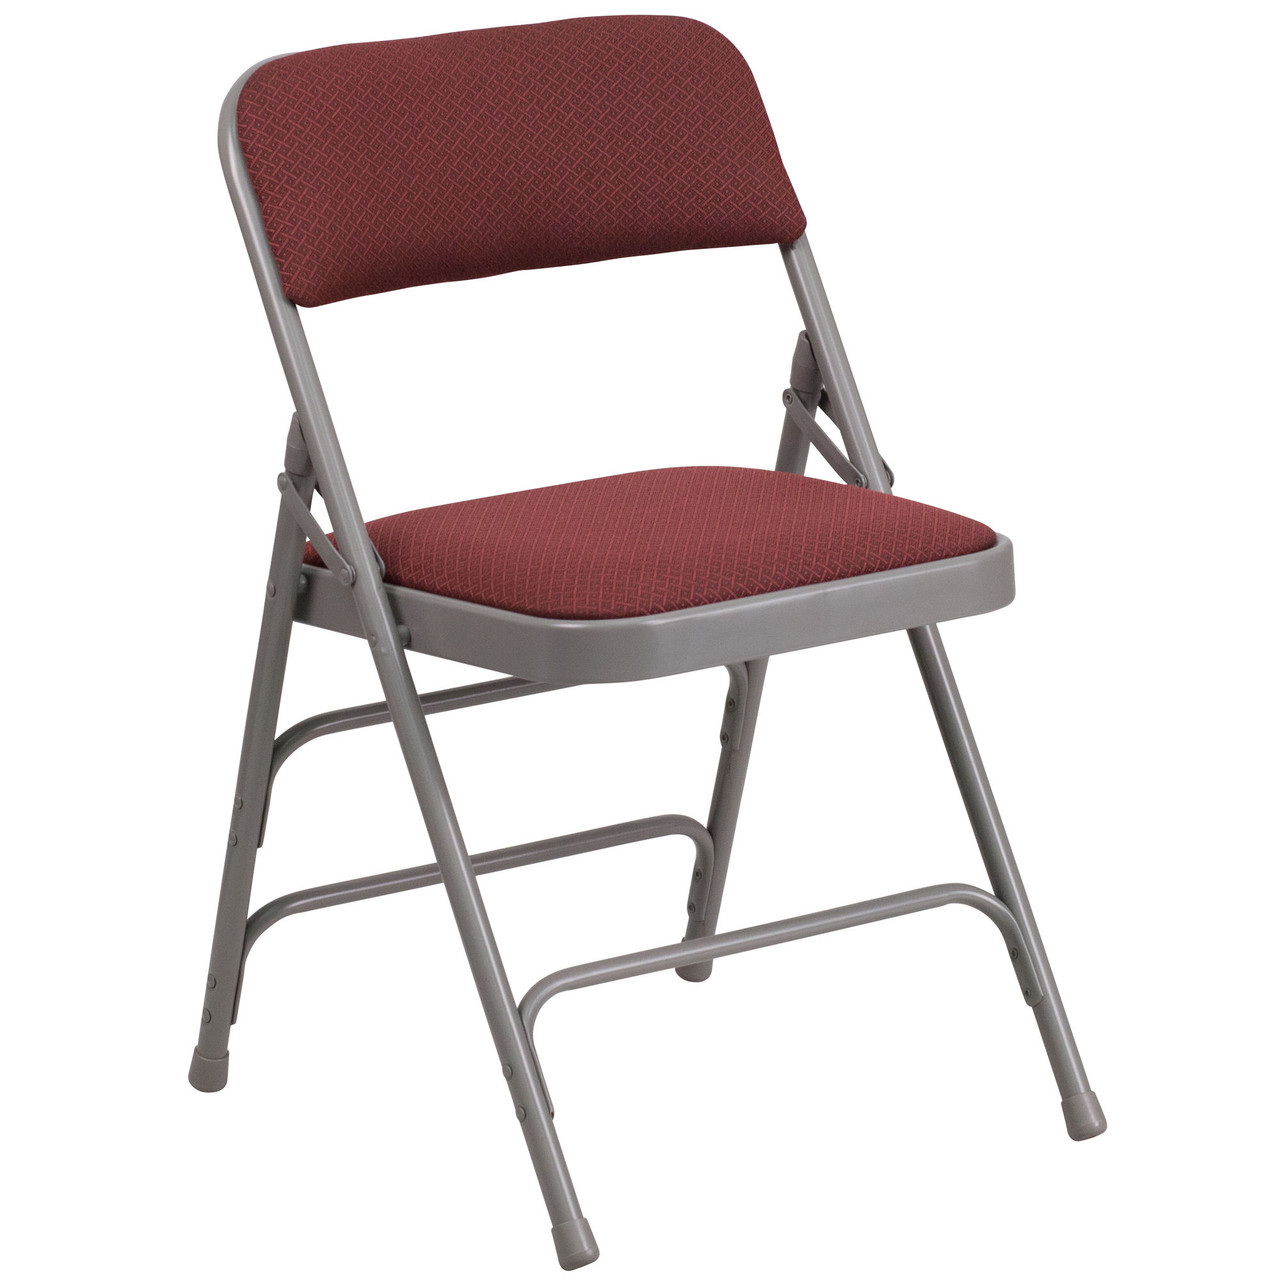 Awe Inspiring Advantage Grey Padded Metal Folding Chair Pattern Burgundy 1 In Fabric Seat Aw Mc309Af Bg Gg Caraccident5 Cool Chair Designs And Ideas Caraccident5Info